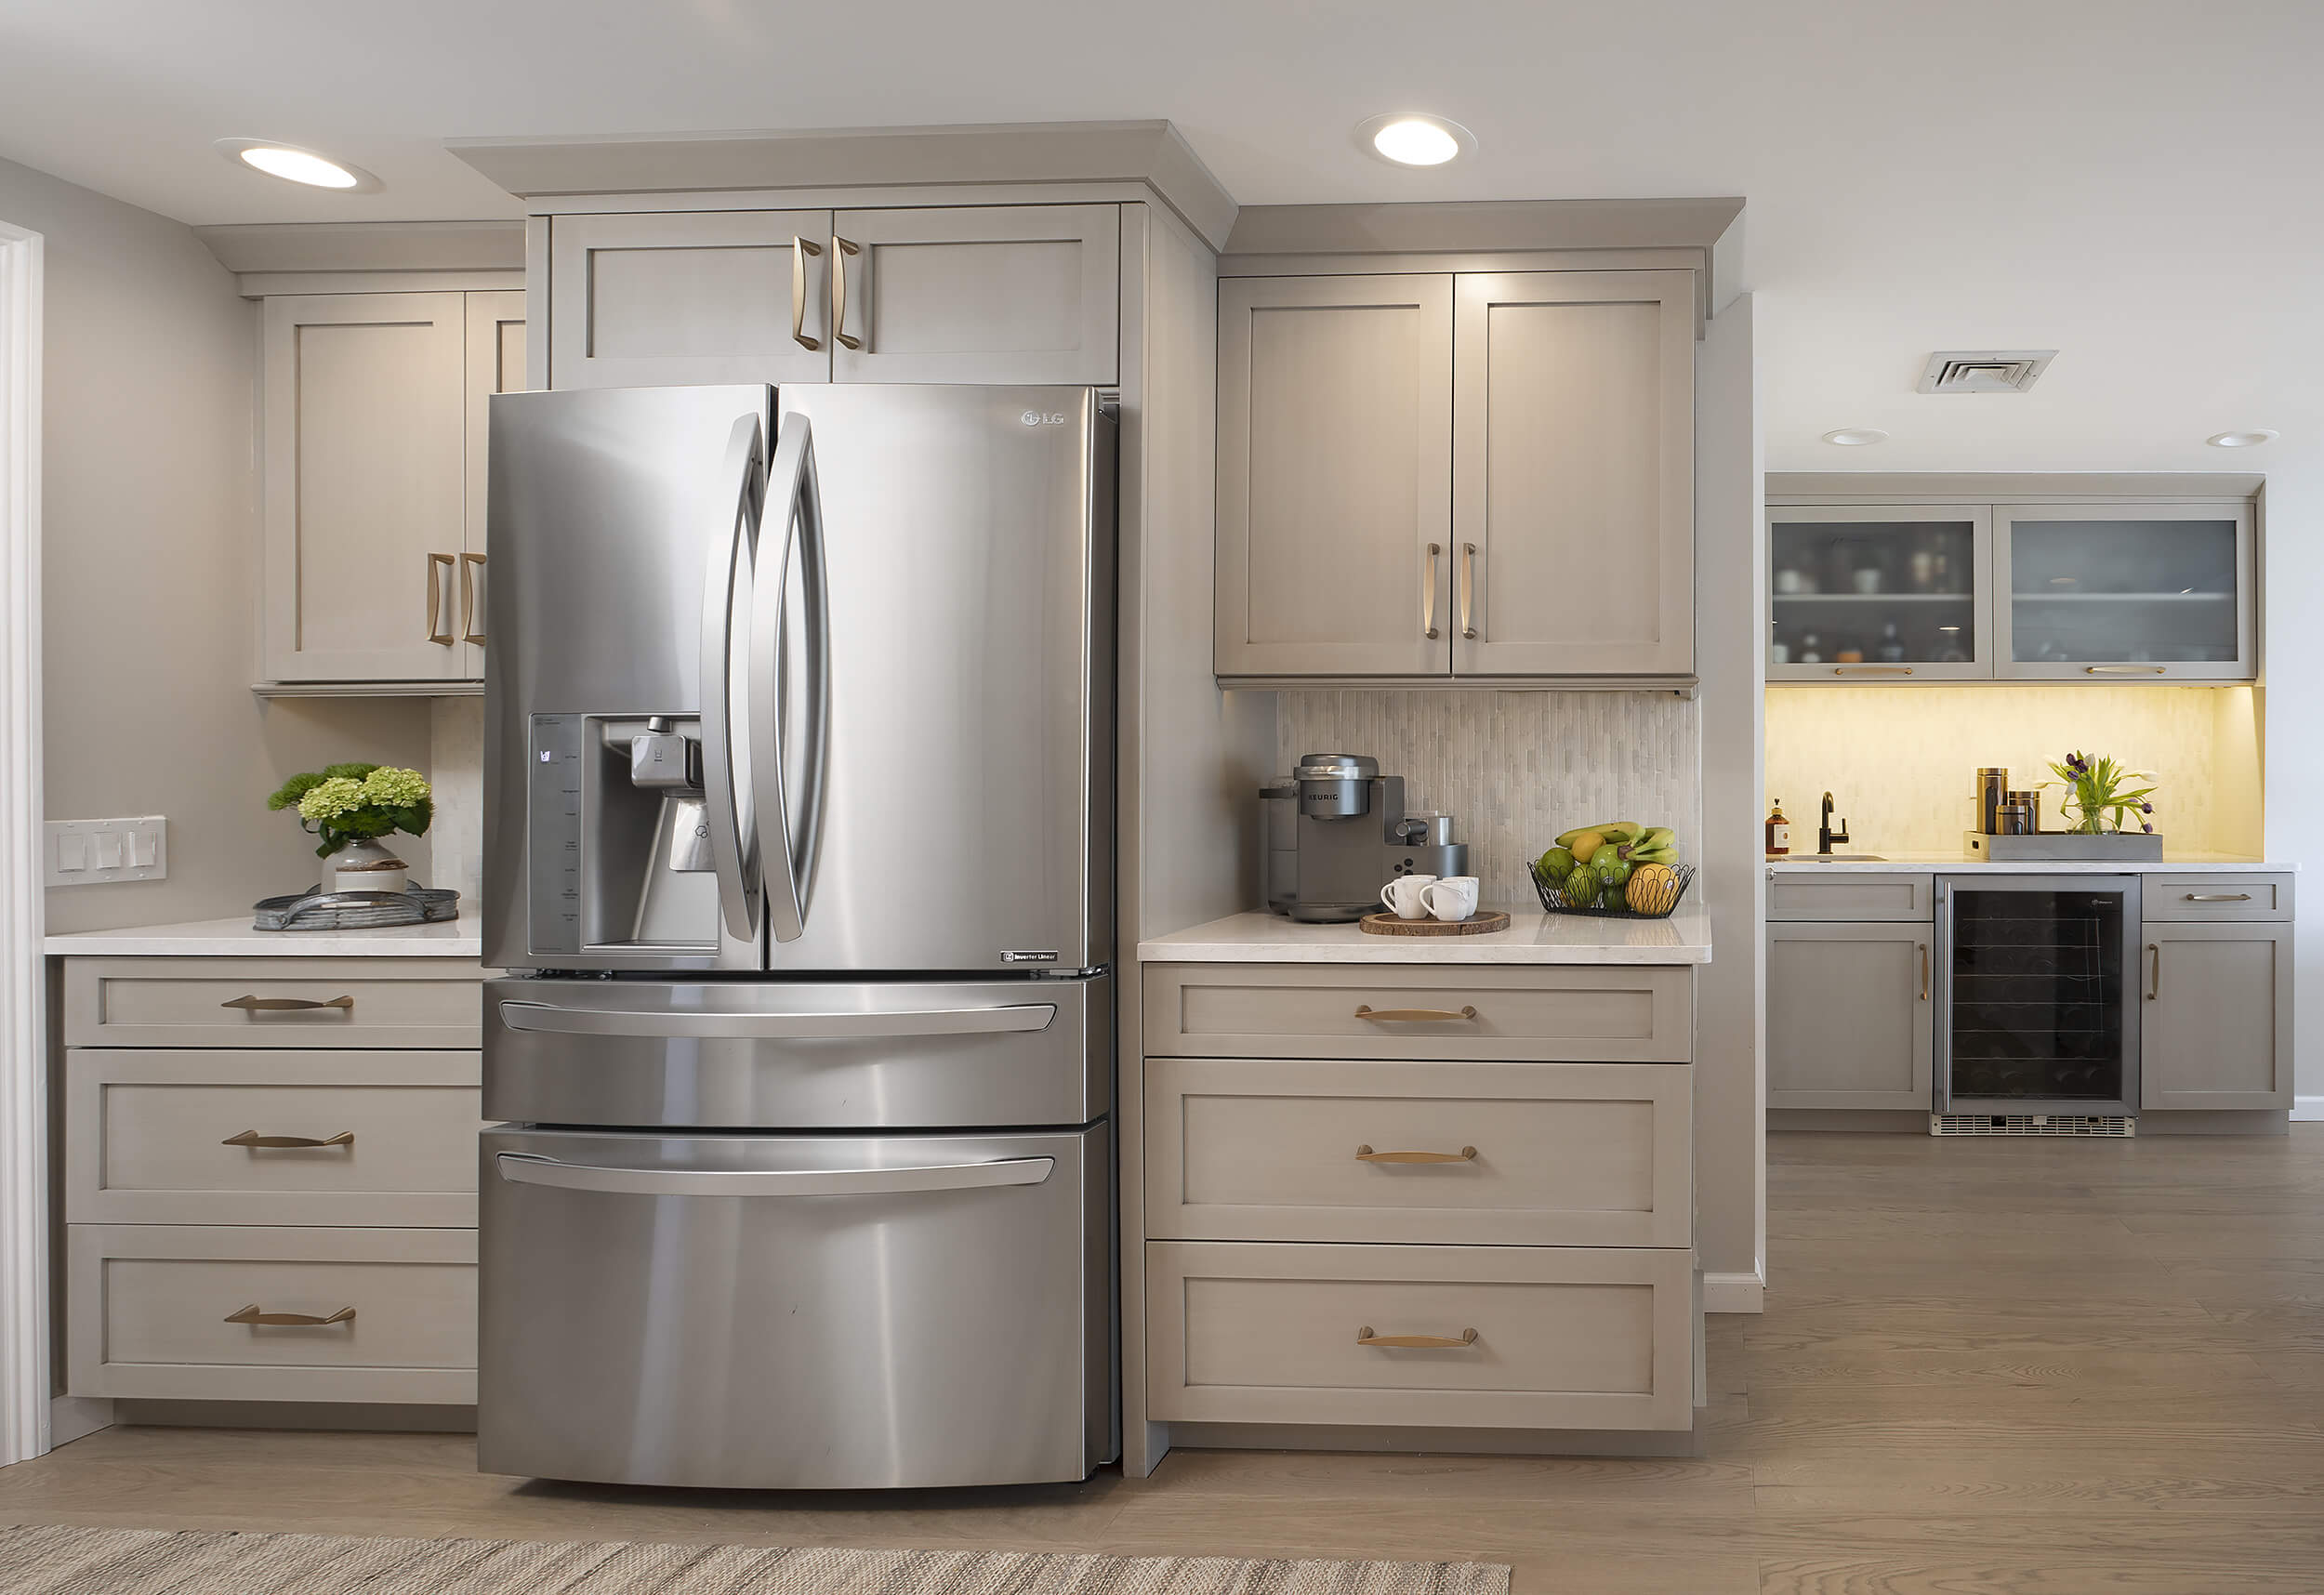 Hamden Kitchen - Fridge Cabinets | Viking Kitchen Cabinets